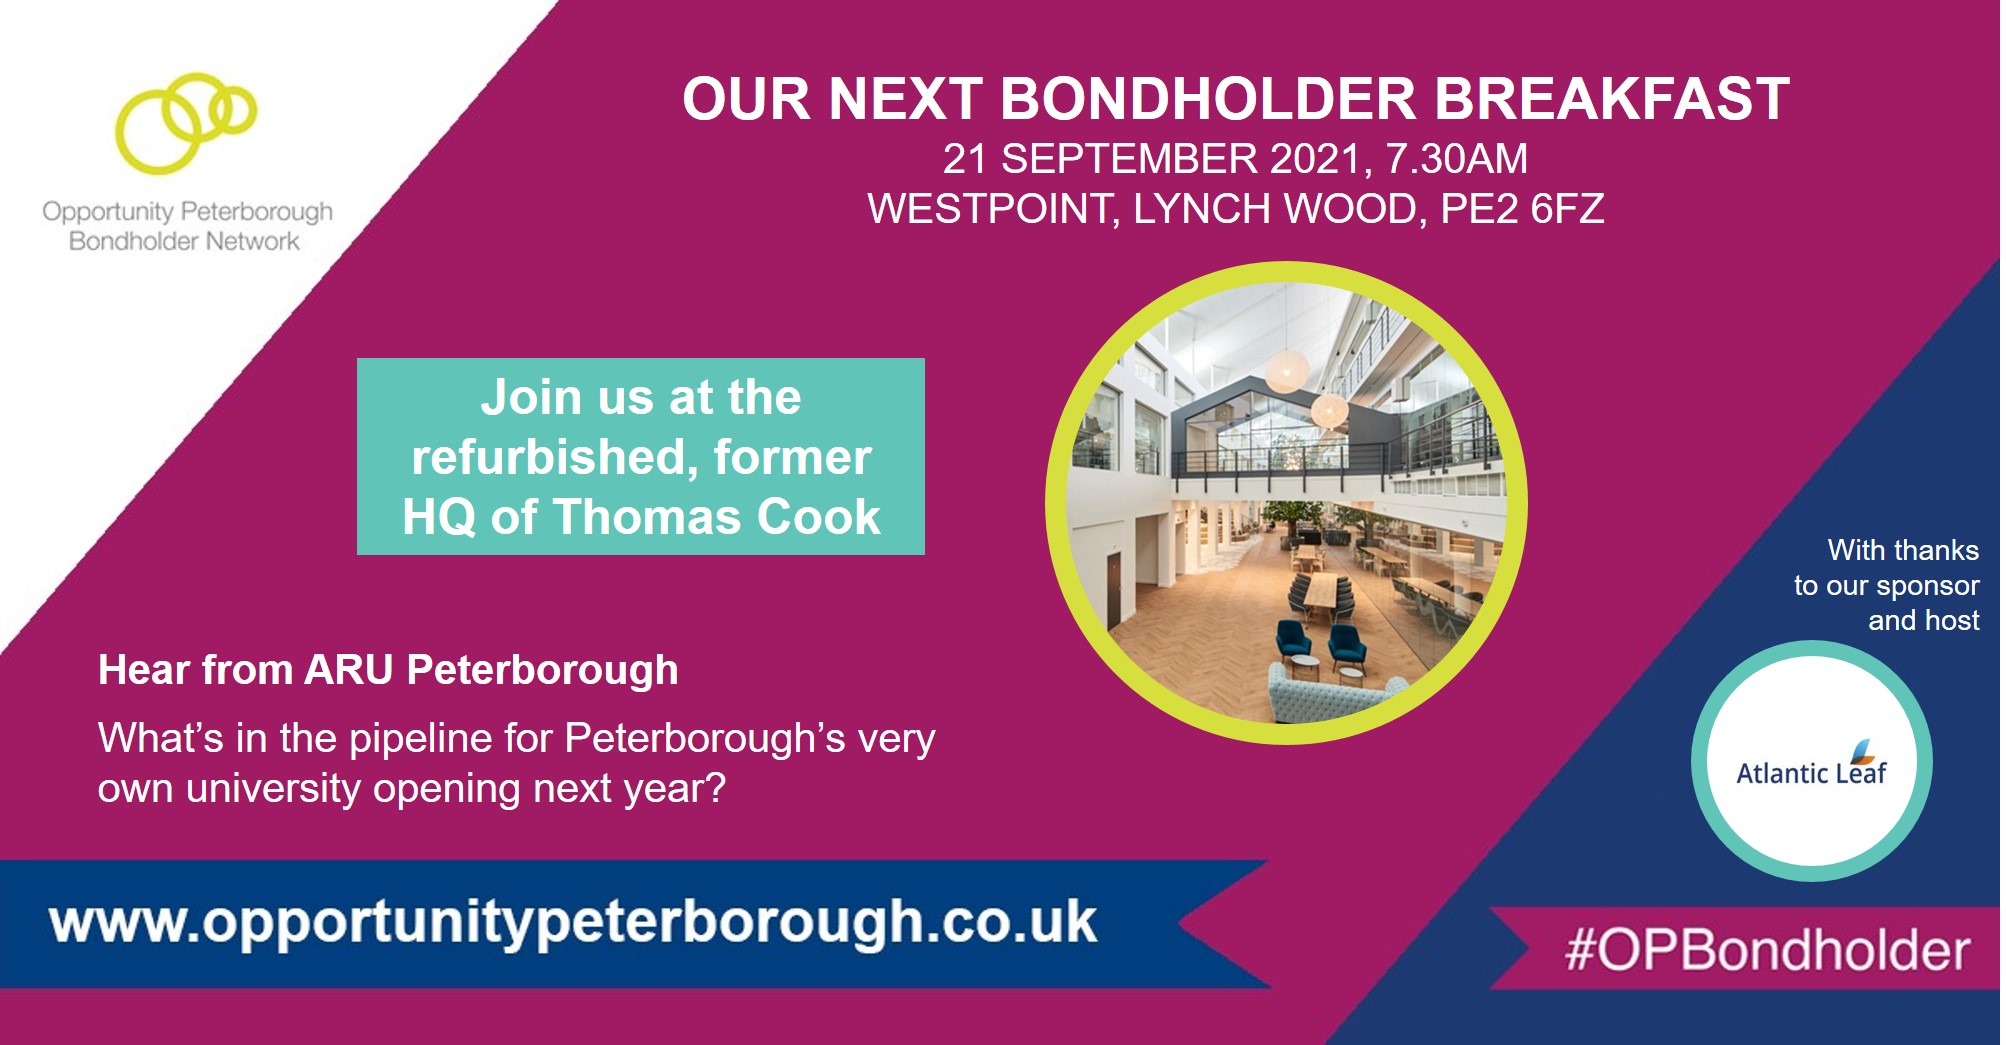 ARU Peterborough to address city businesses at Opportunity Peterborough Bondholder Breakfast on 21 September, one year ahead of university opening